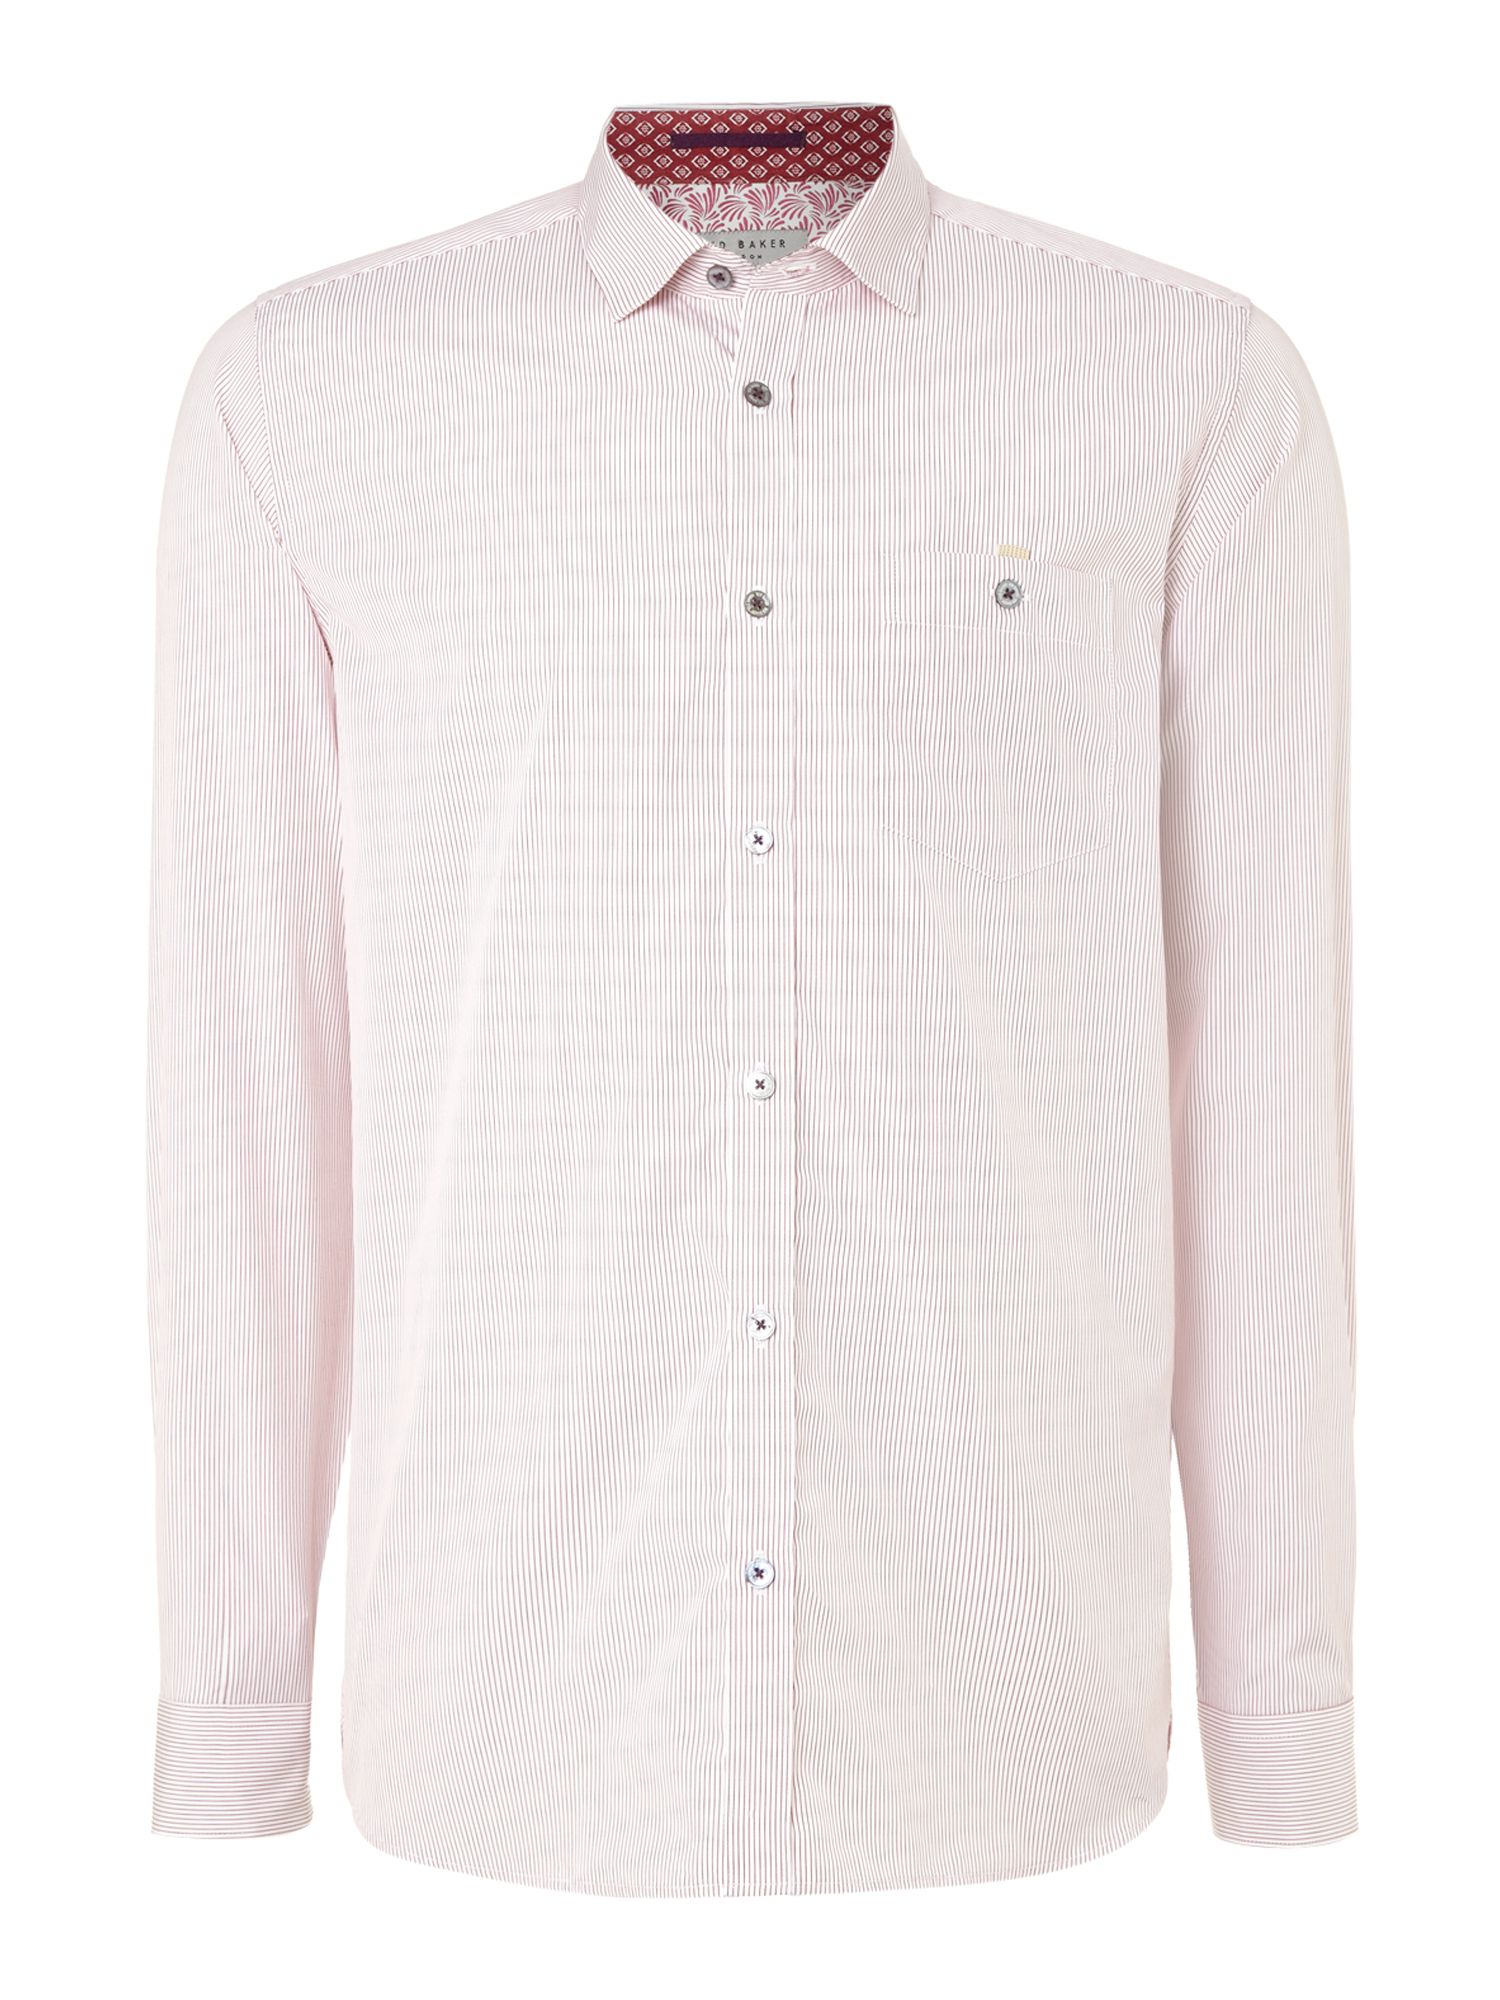 Ted Baker Cotton Glasto Striped Long Sleeve Shirt in Red for Men